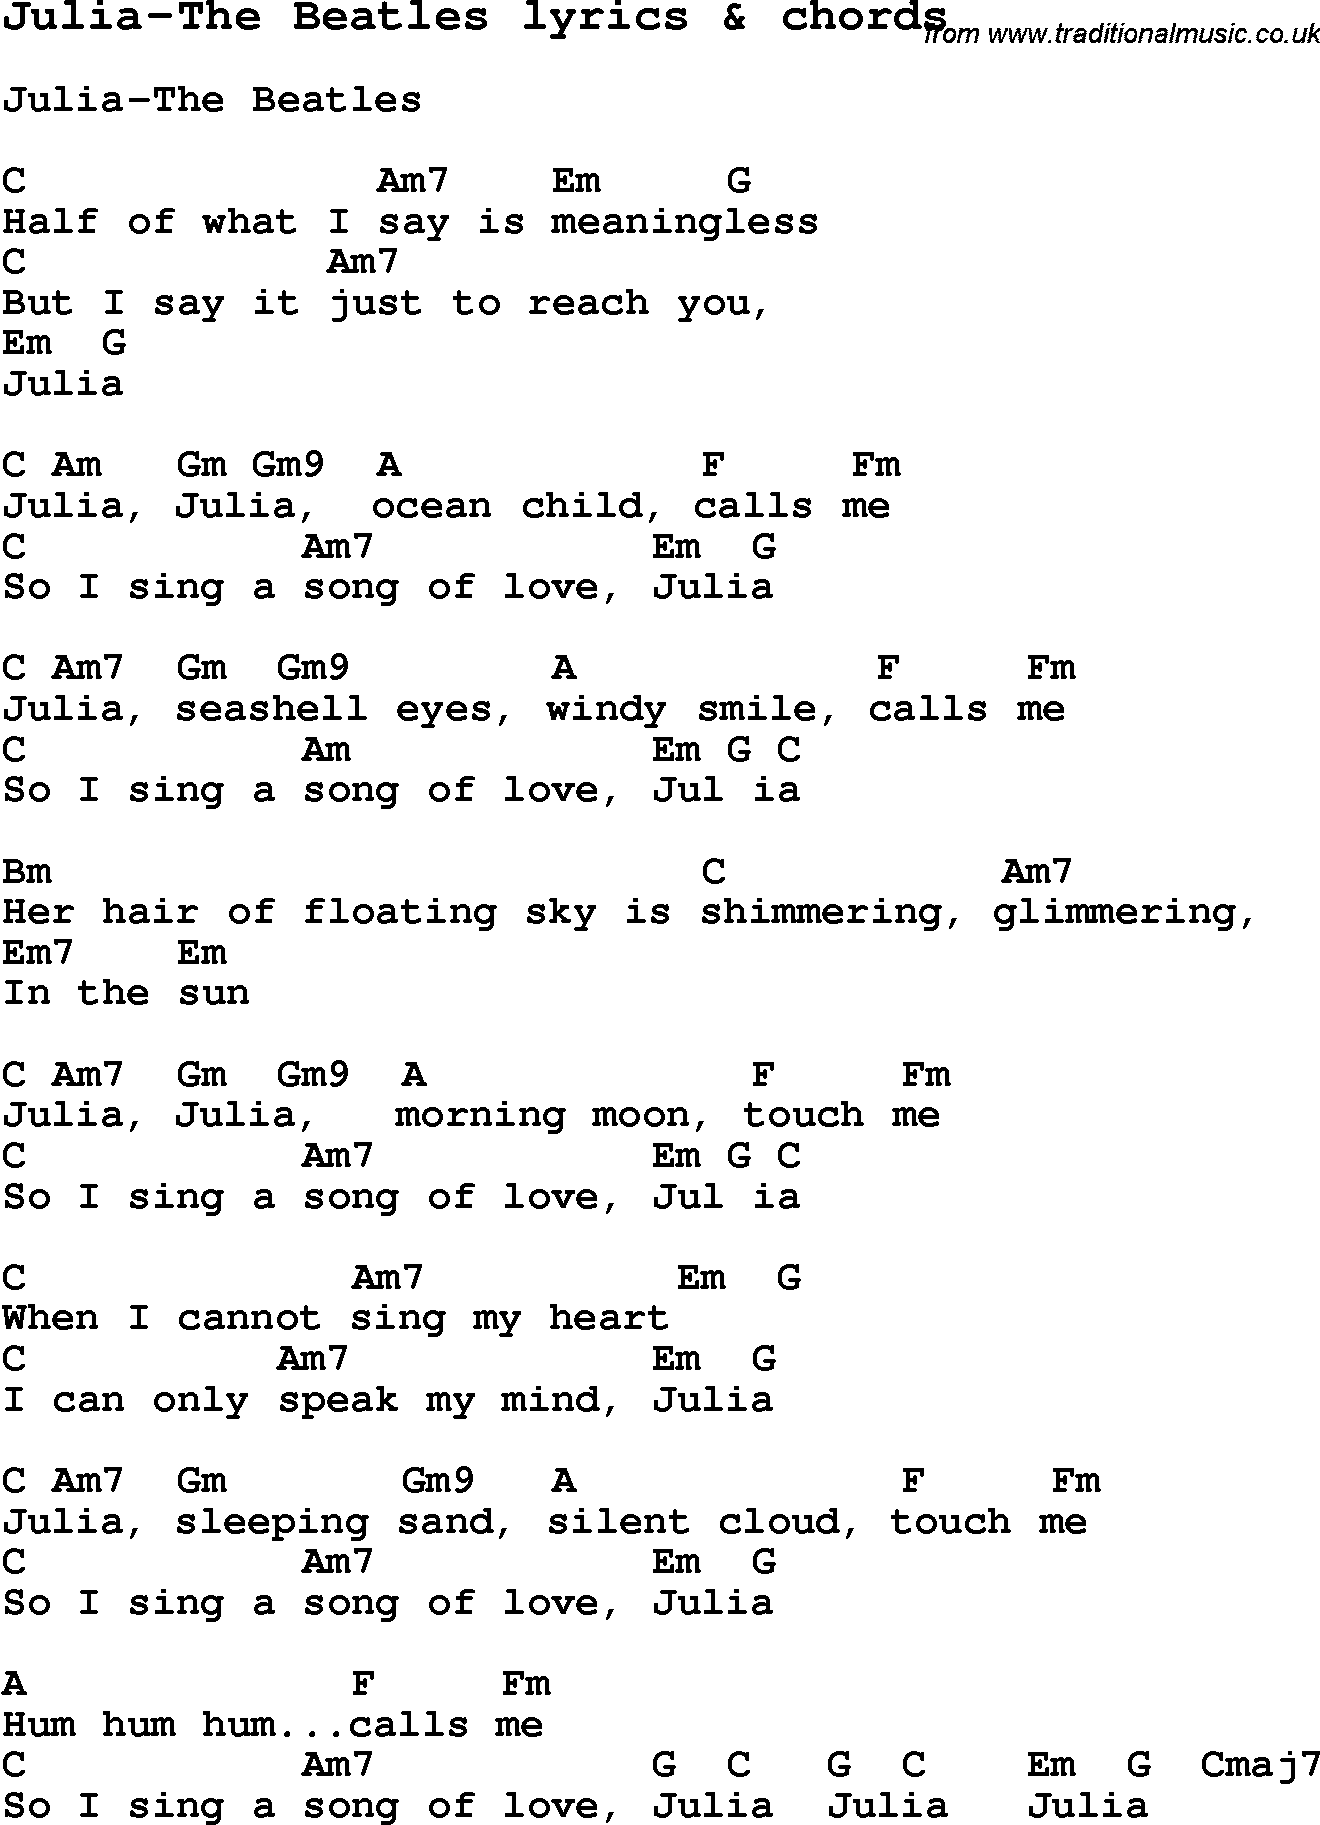 Love Song Lyrics For Julia The Beatles With Chords For Ukulele